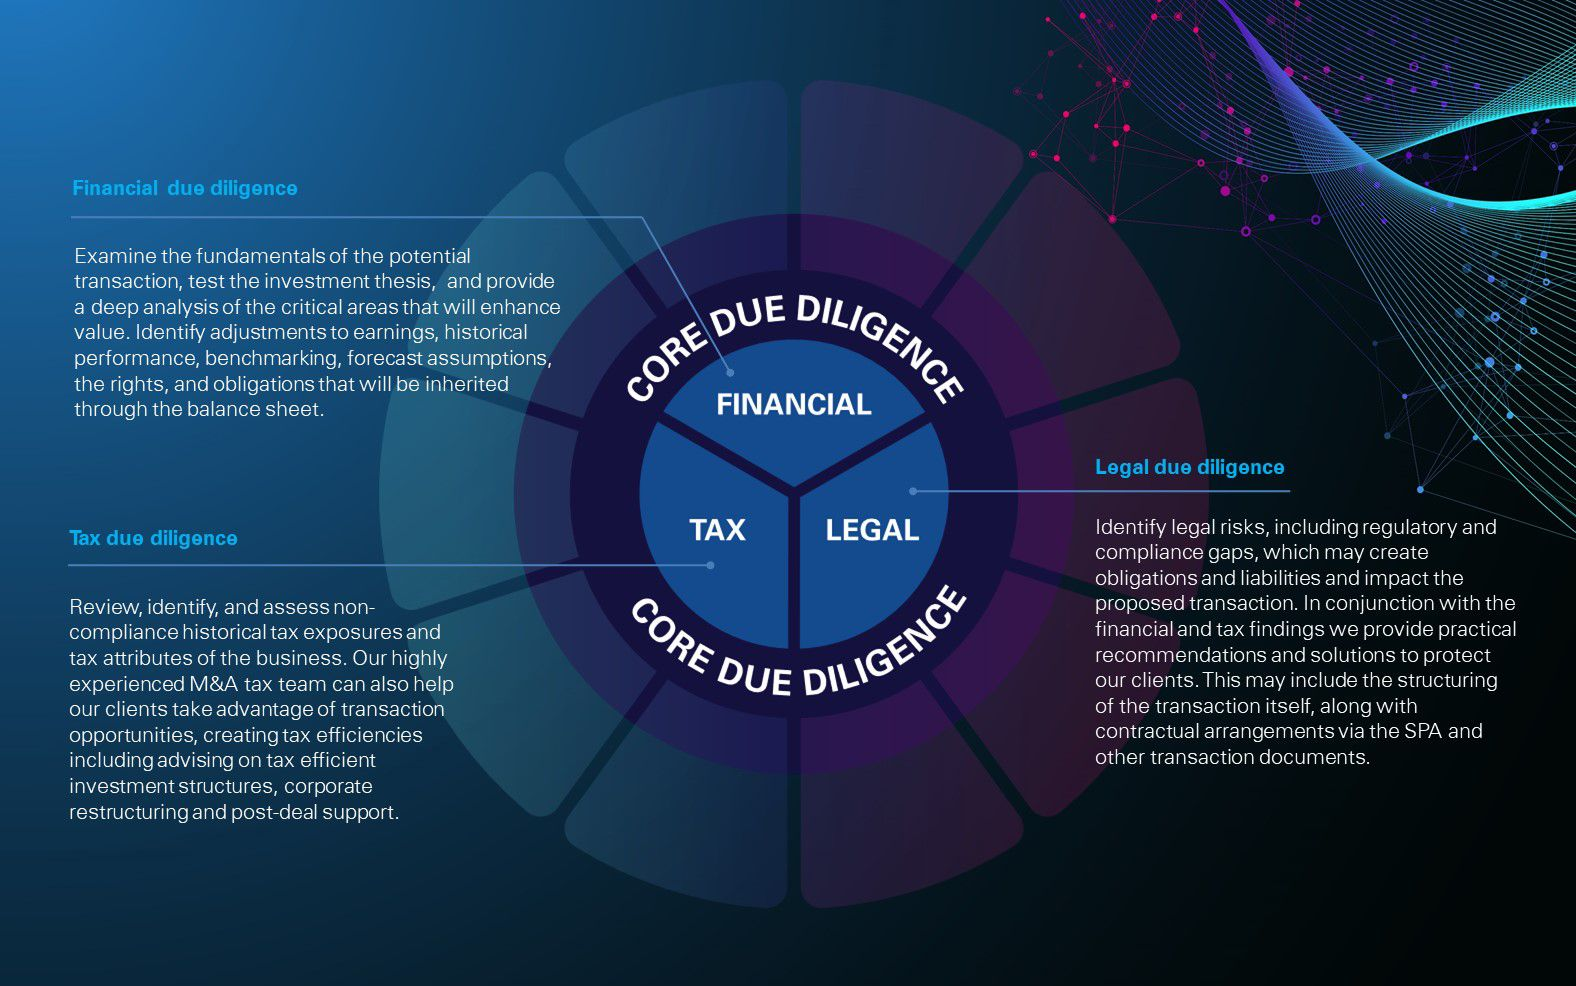 KPMG's core Integrated Due Diligence service